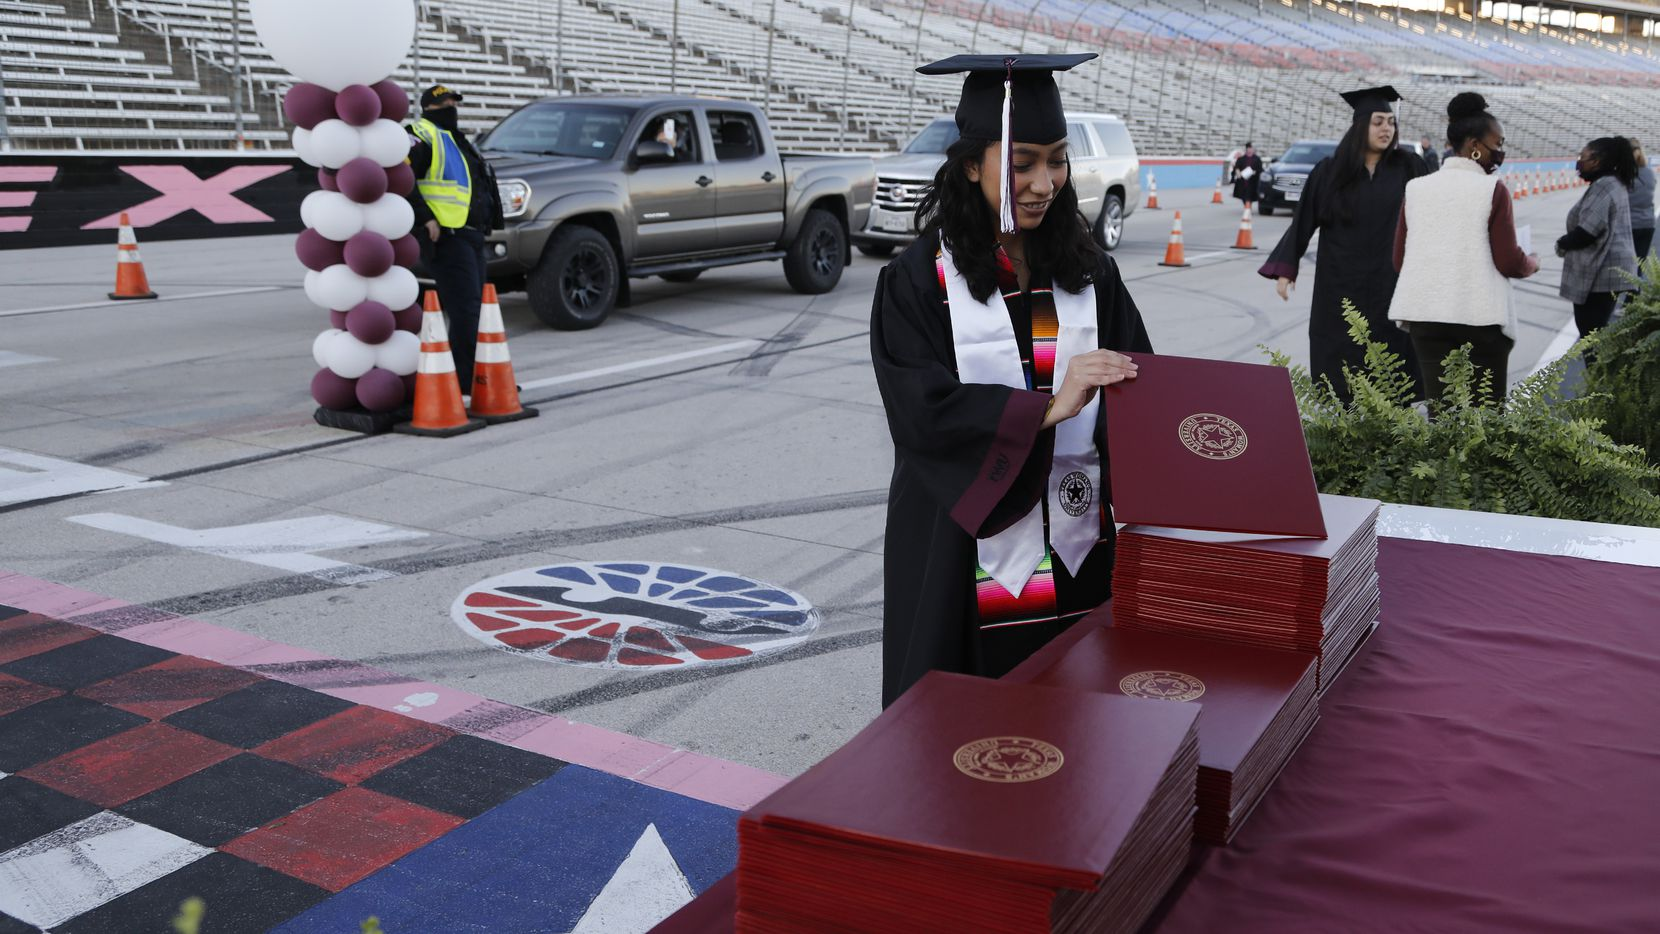 Michelle Castro picks up her diploma cover at the finish line as Texas Woman's University held their graduation ceremony at the Texas Motor Speedway in Fort Worth on Dec. 12, 2020.